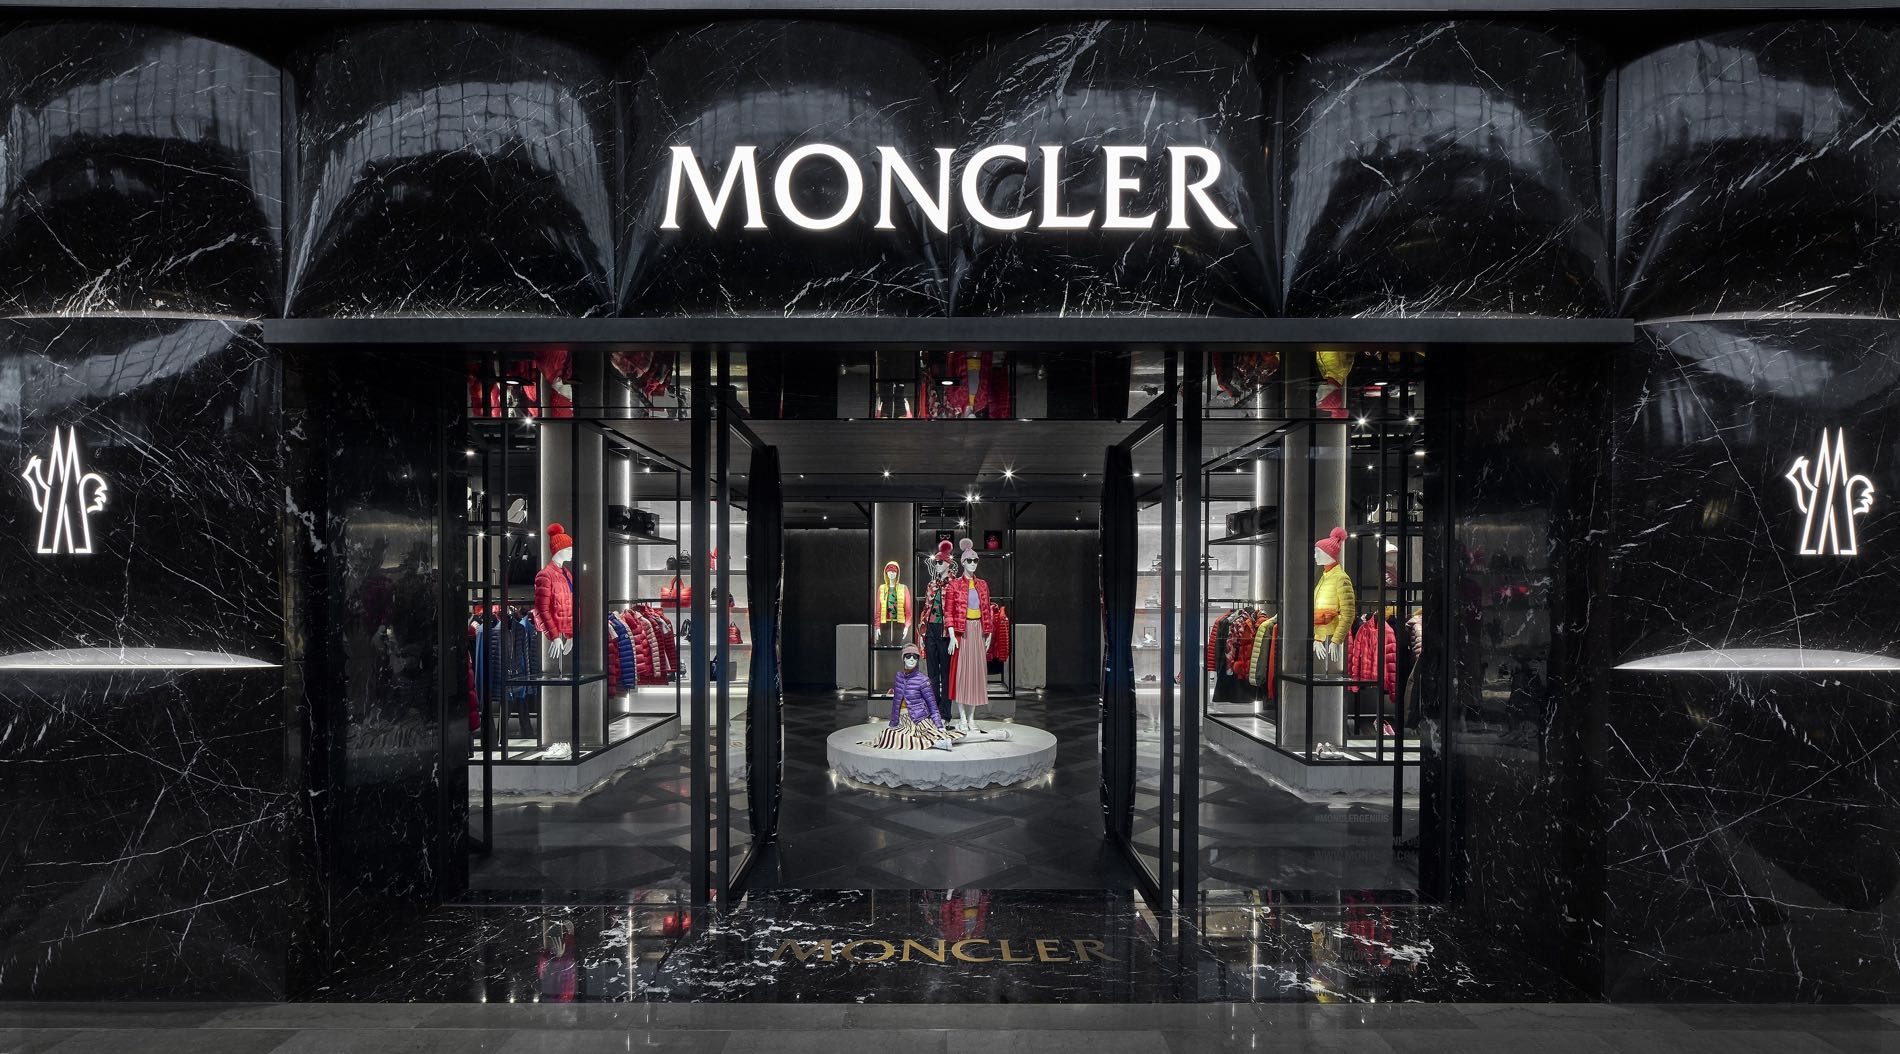 Moncler new store Singapore at Marina Bay Sands